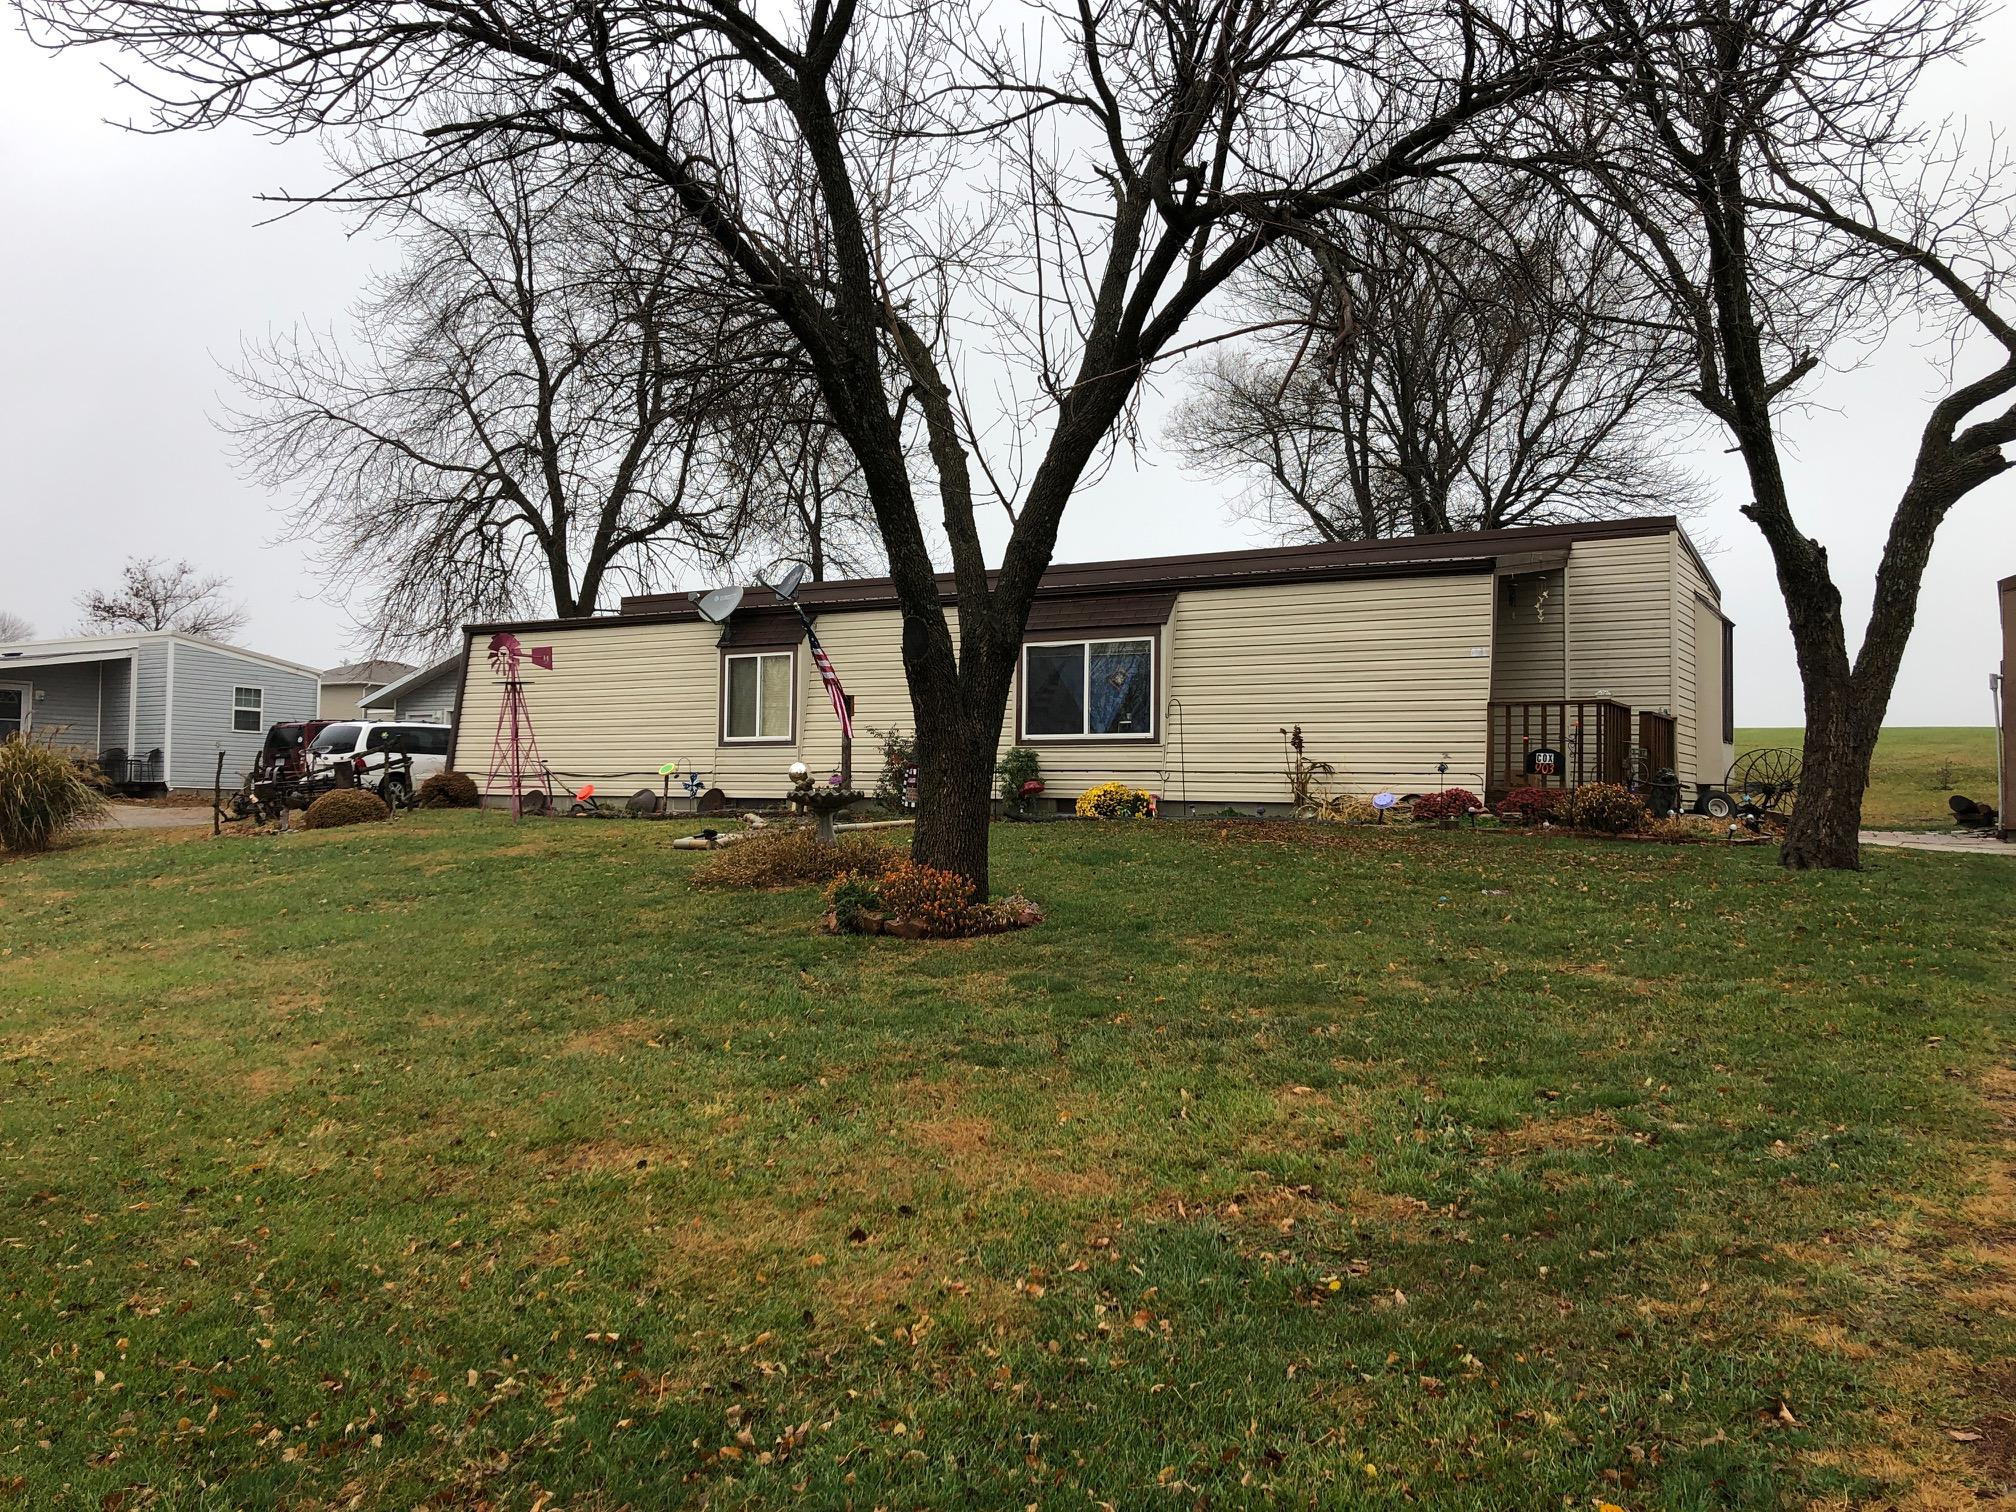 903 E SOUTH Avenue, Maryville, Missouri 64468, 3 Bedrooms Bedrooms, ,2 BathroomsBathrooms,Residential,SOUTH,4898